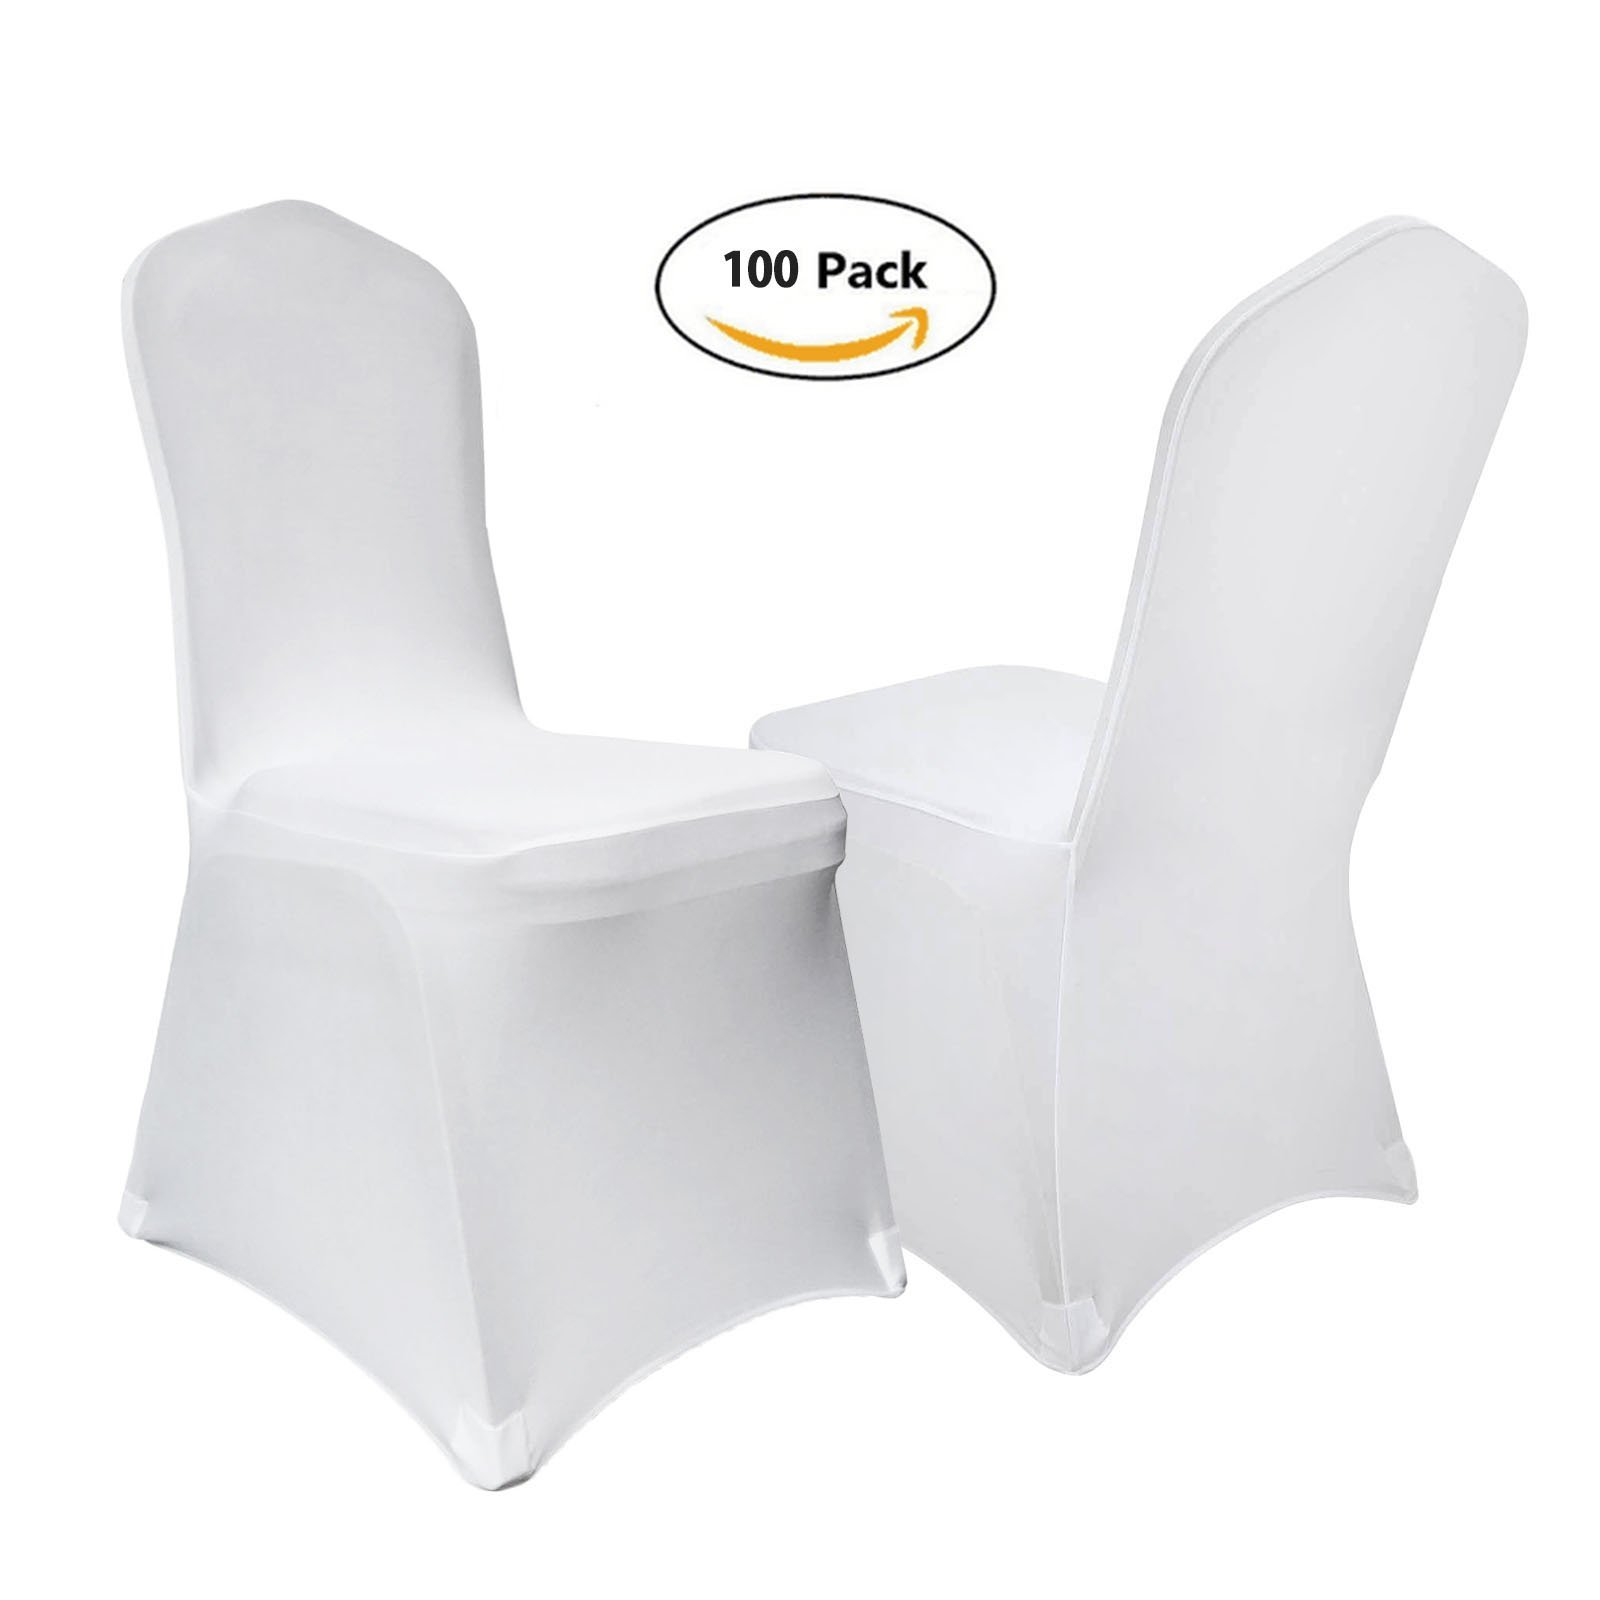 VEVOR Set of 100pcs White Color Polyester Spandex Banquet Dining Chair Covers for Wedding or Party Use (100PCS white) by VEVOR